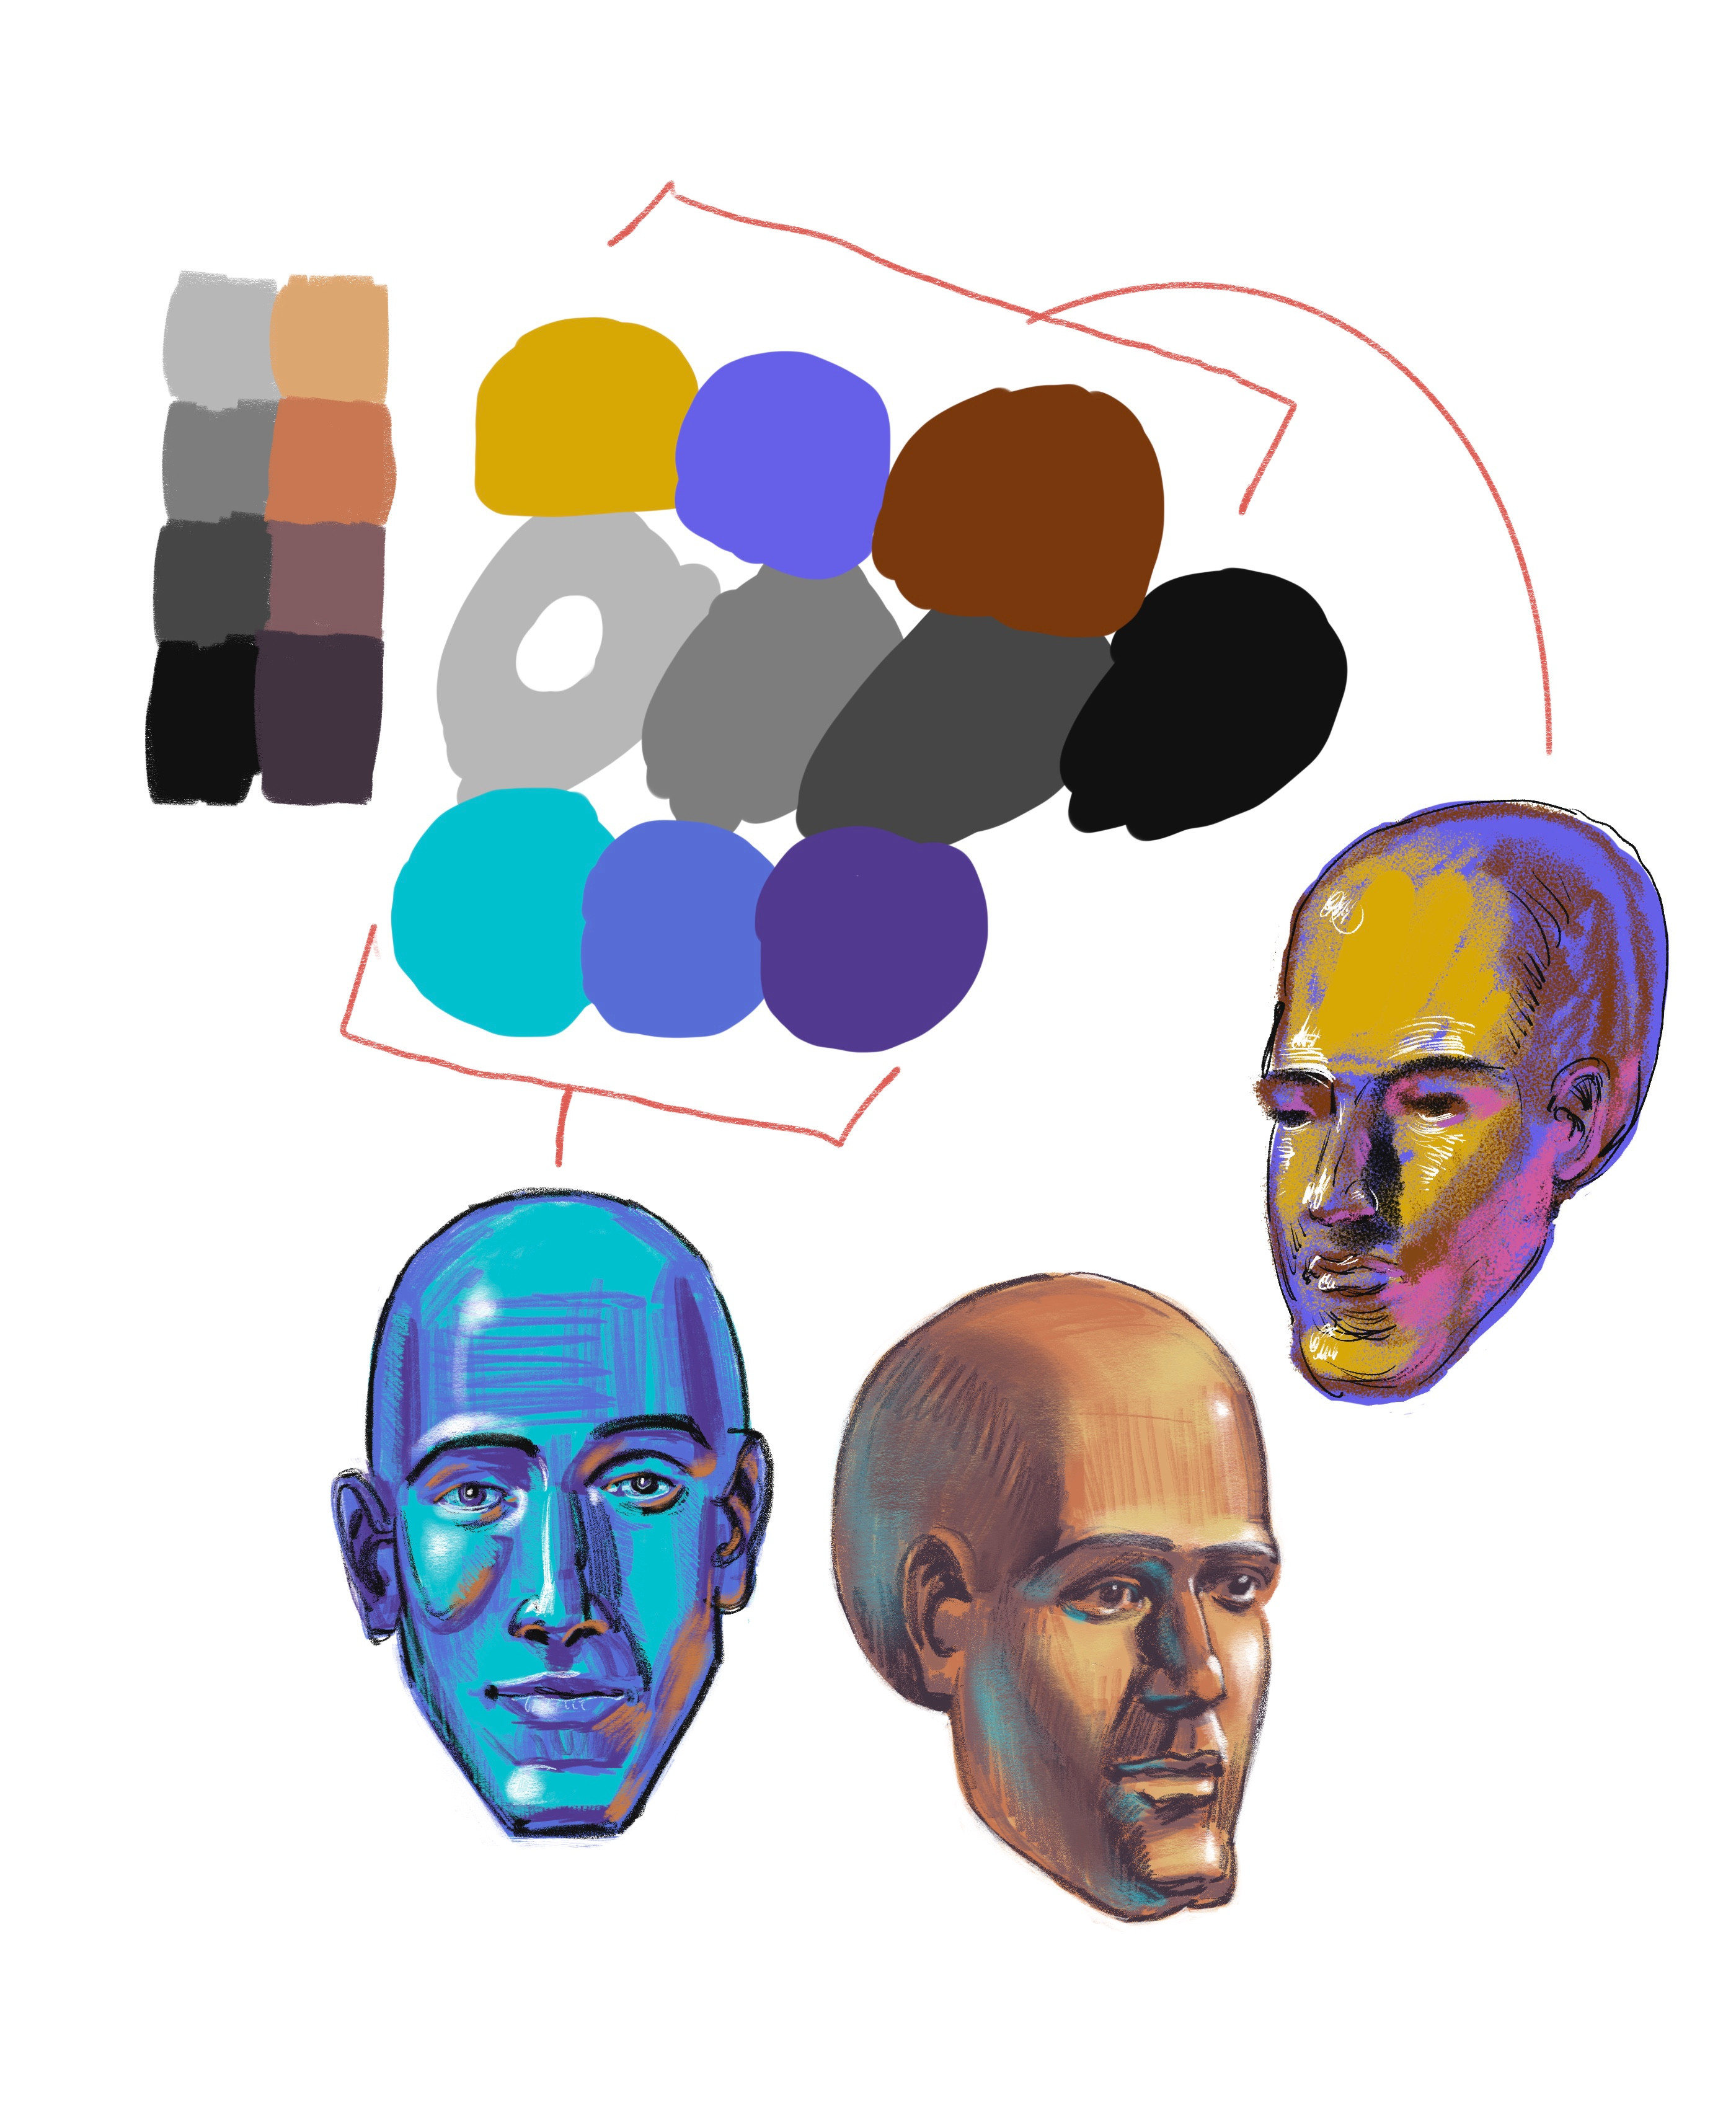 Selecting colour according to value.